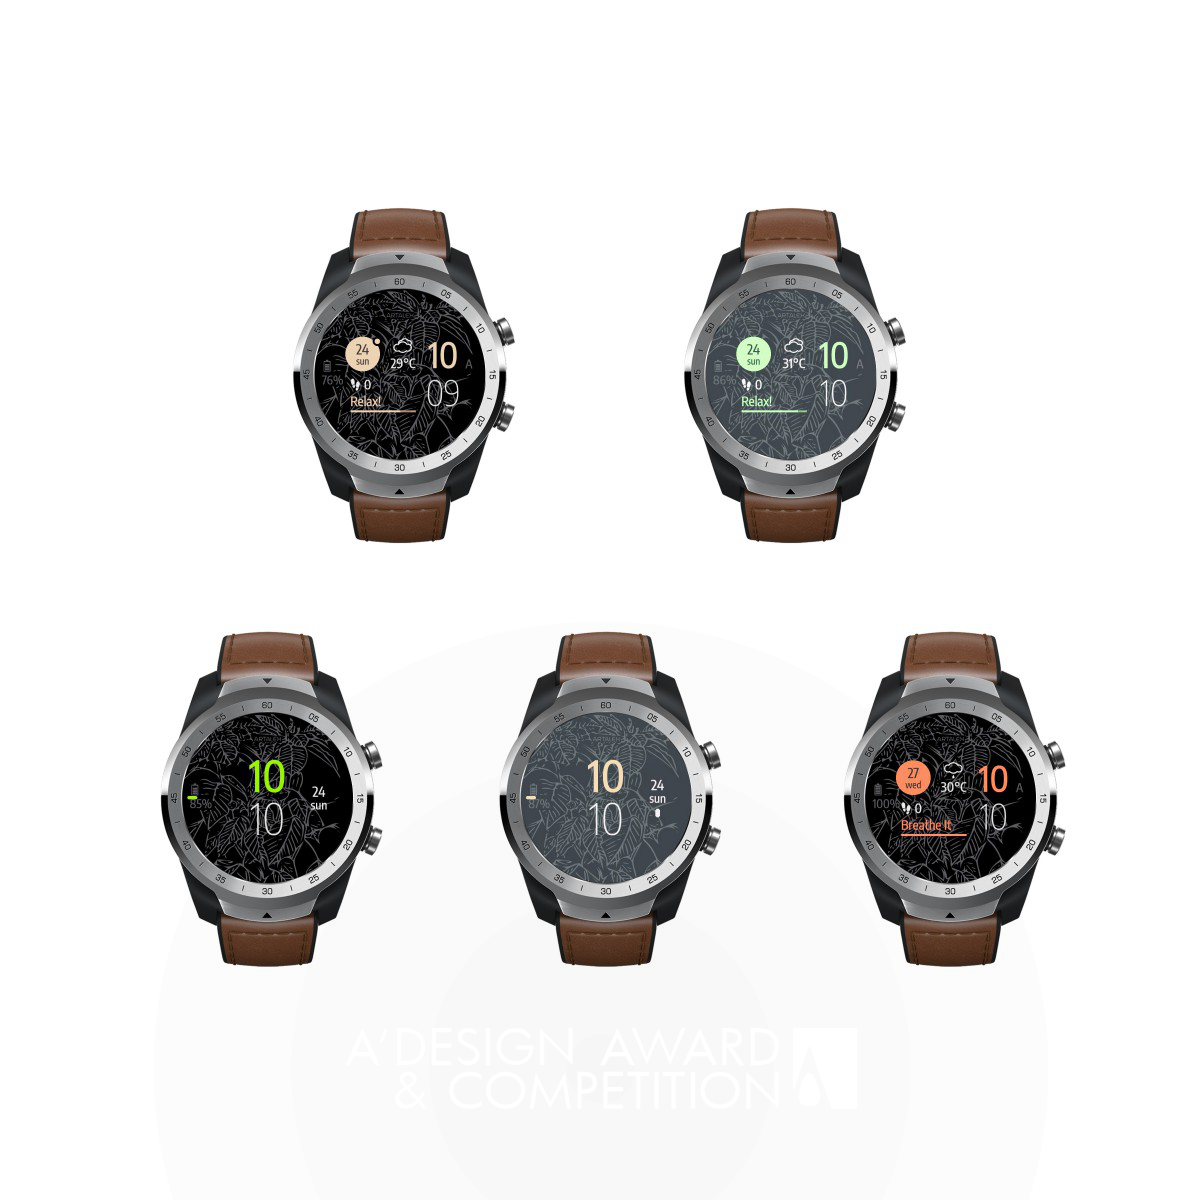 The Plant Smartwatch Watch Face